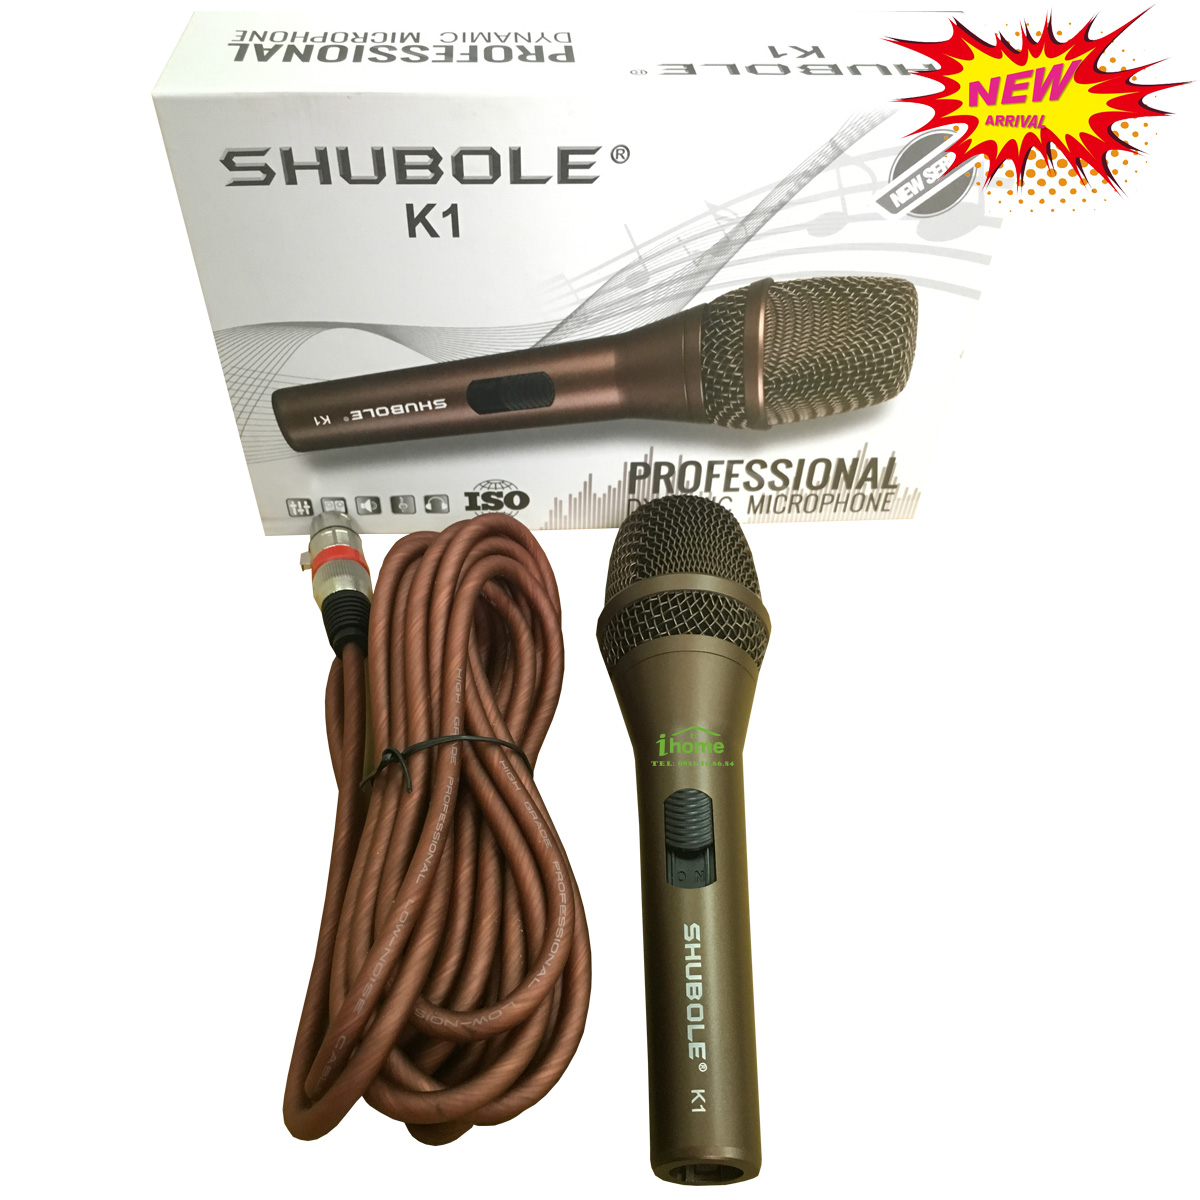 micro-co-day-shubole-k1-gia-re